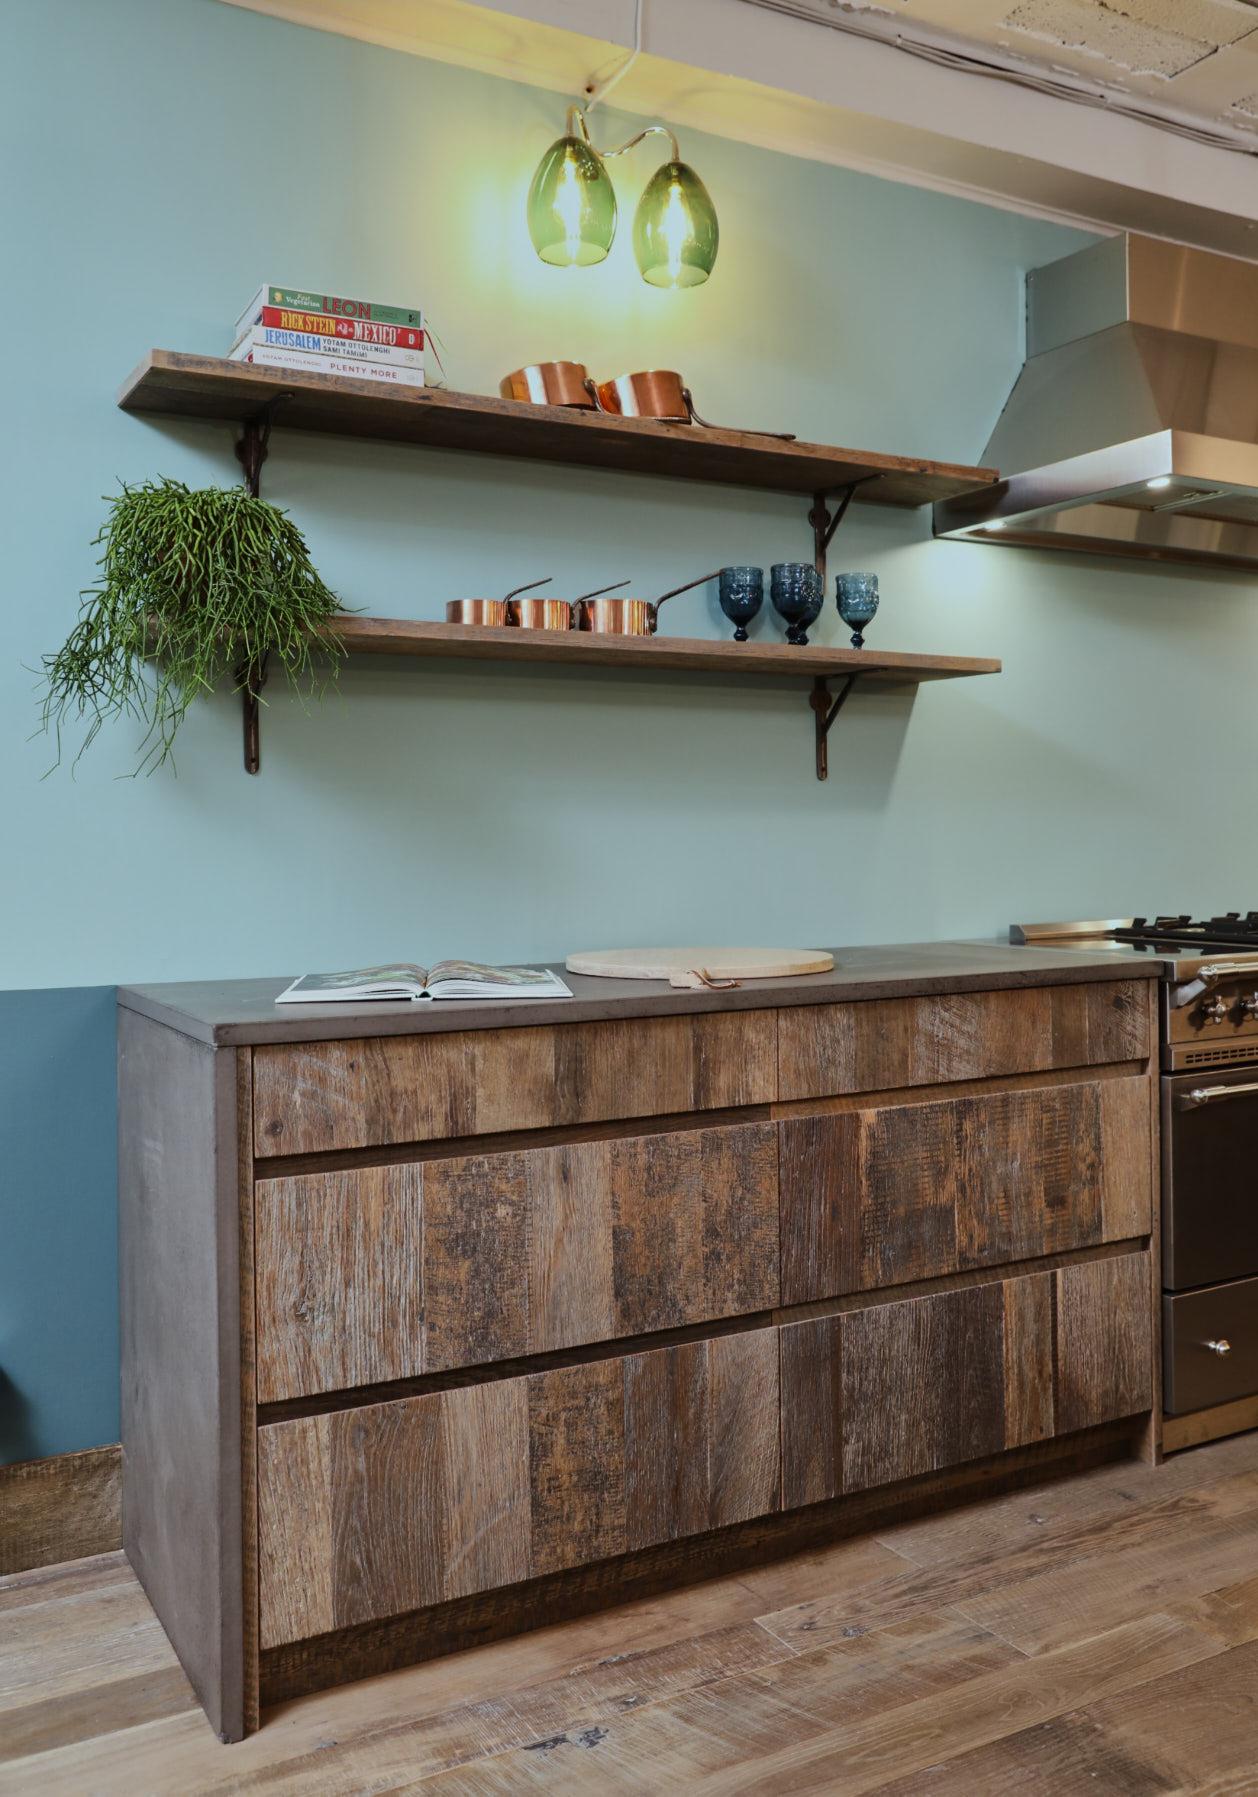 Reclaimed pan drawers with concrete kitchen worktop